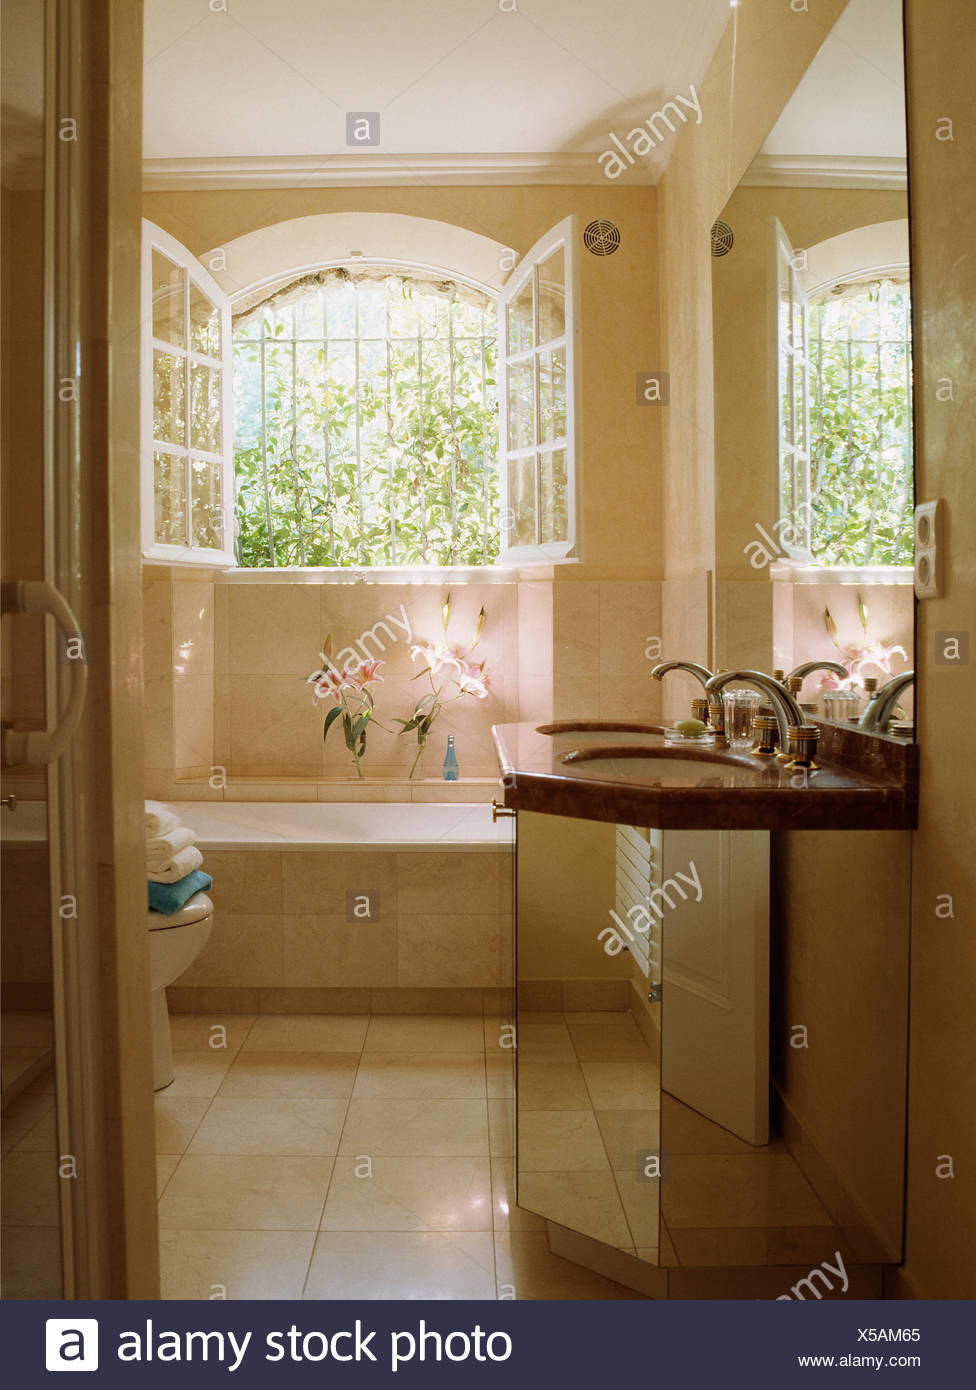 Open Windows Above Bath In French Country Bathroom With Basin In Mirrored  Vanity Unit